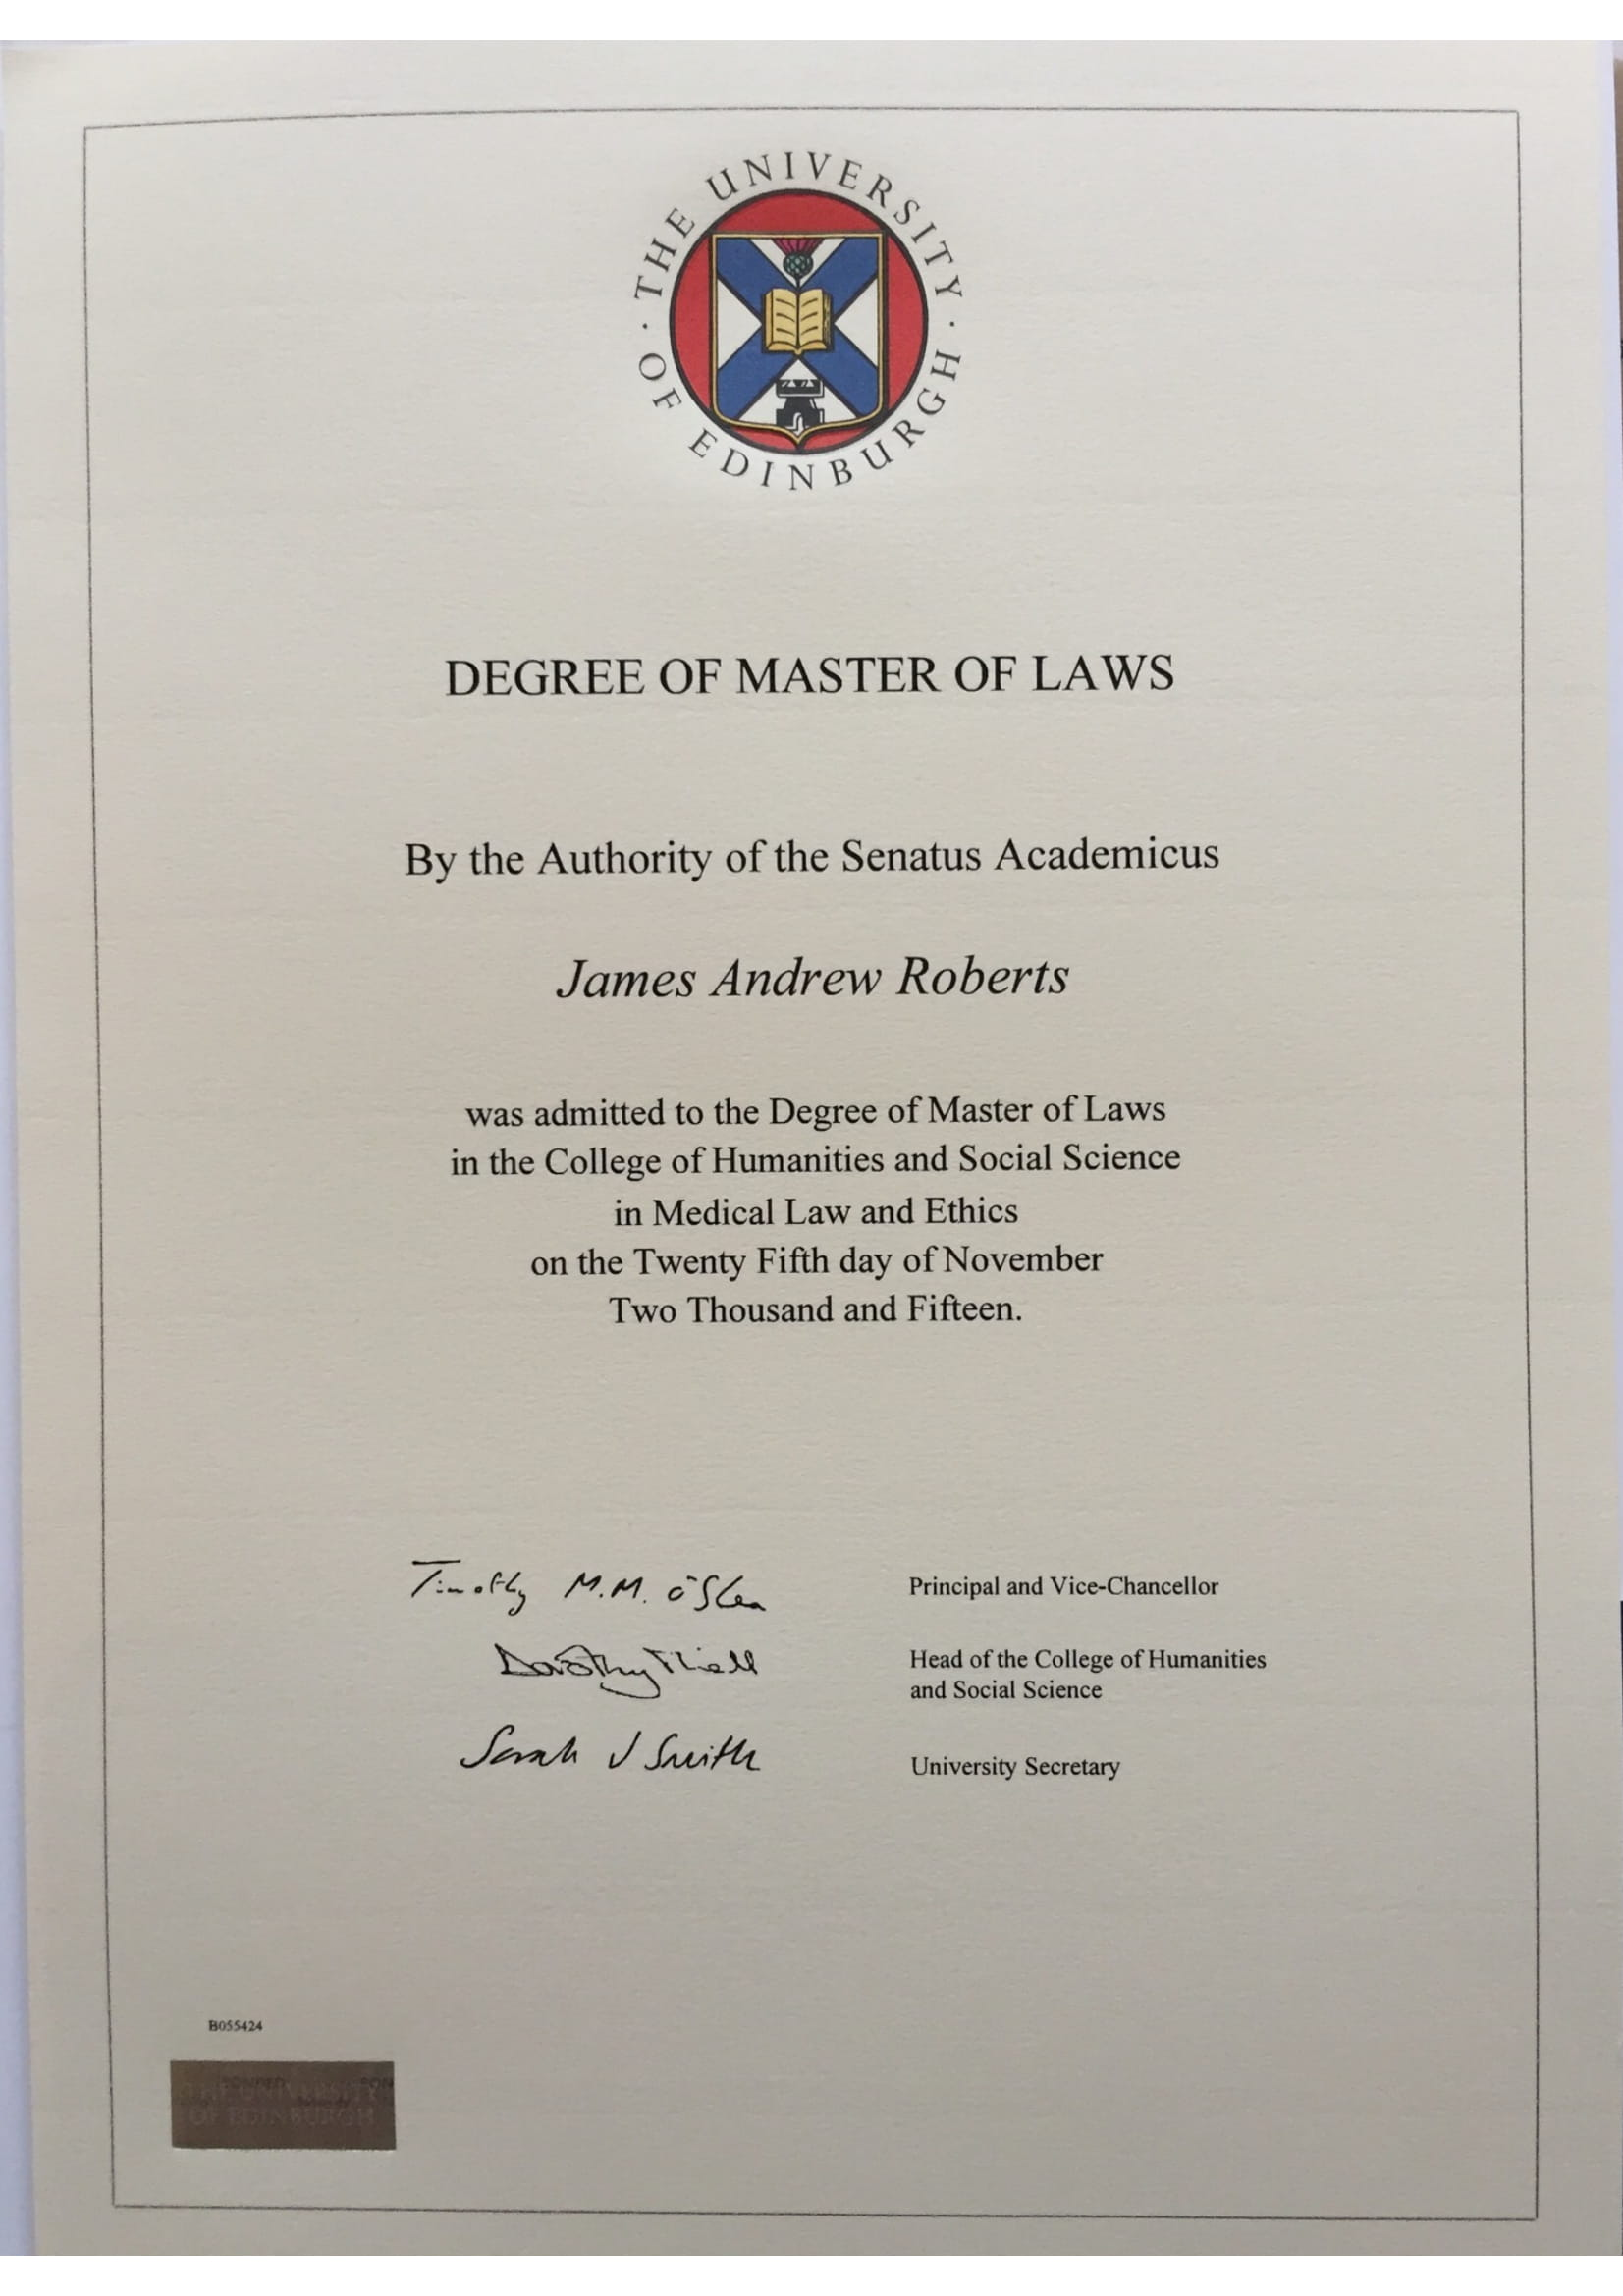 November 2015 – Admitted to the Degree of Master of Laws in the College of Humanities and Social Science in Medical Law and Ethics (University of Edinburgh)